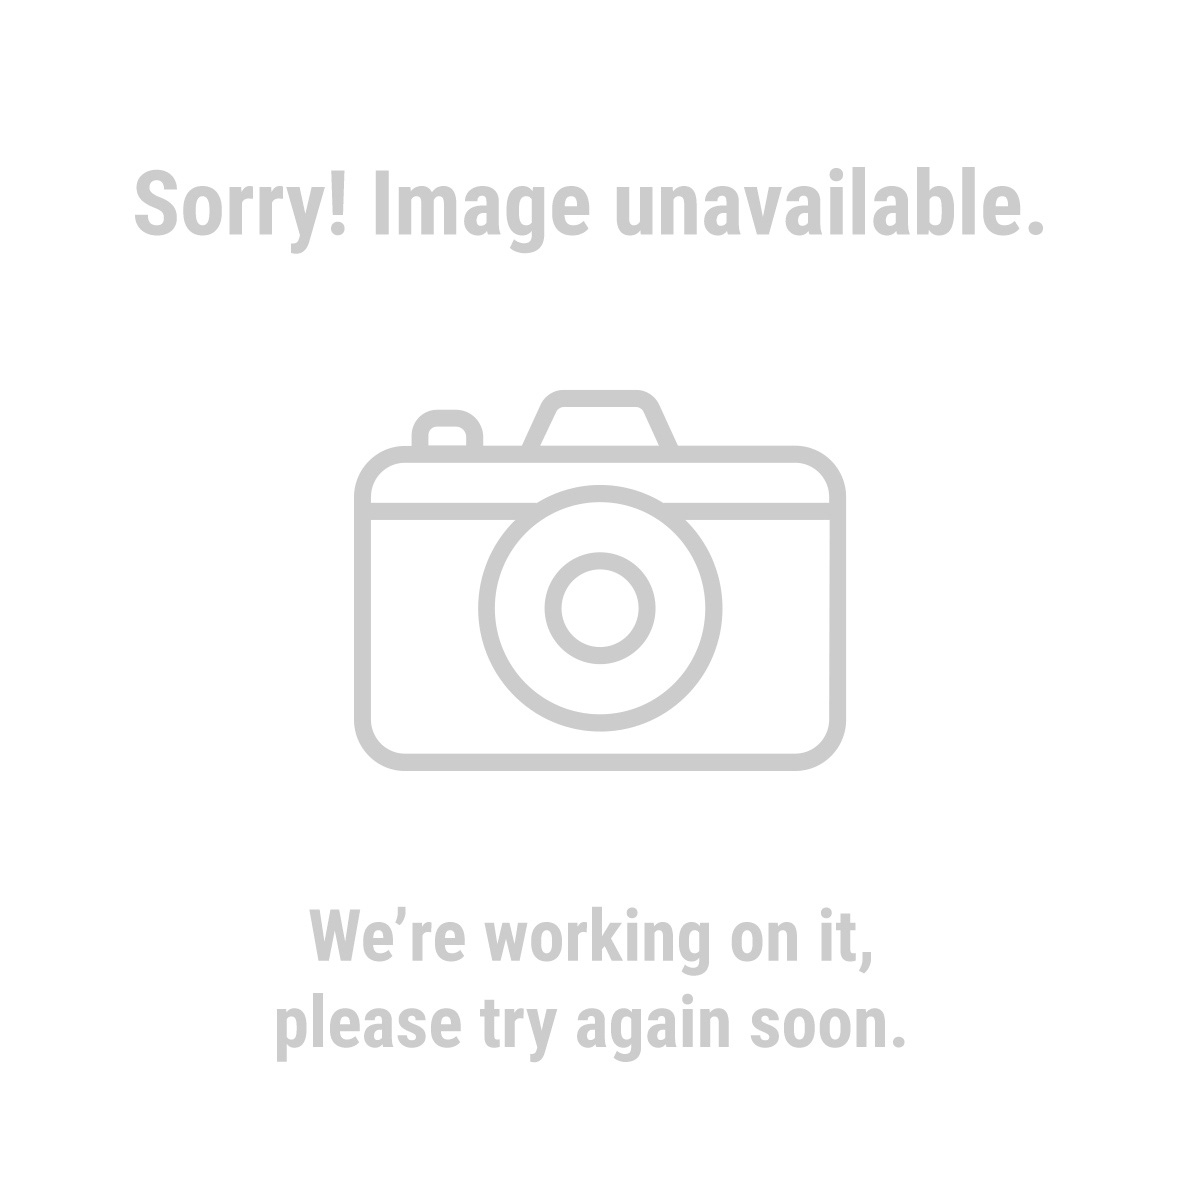 Cen-Tech 95998 Digital Angle Gauge